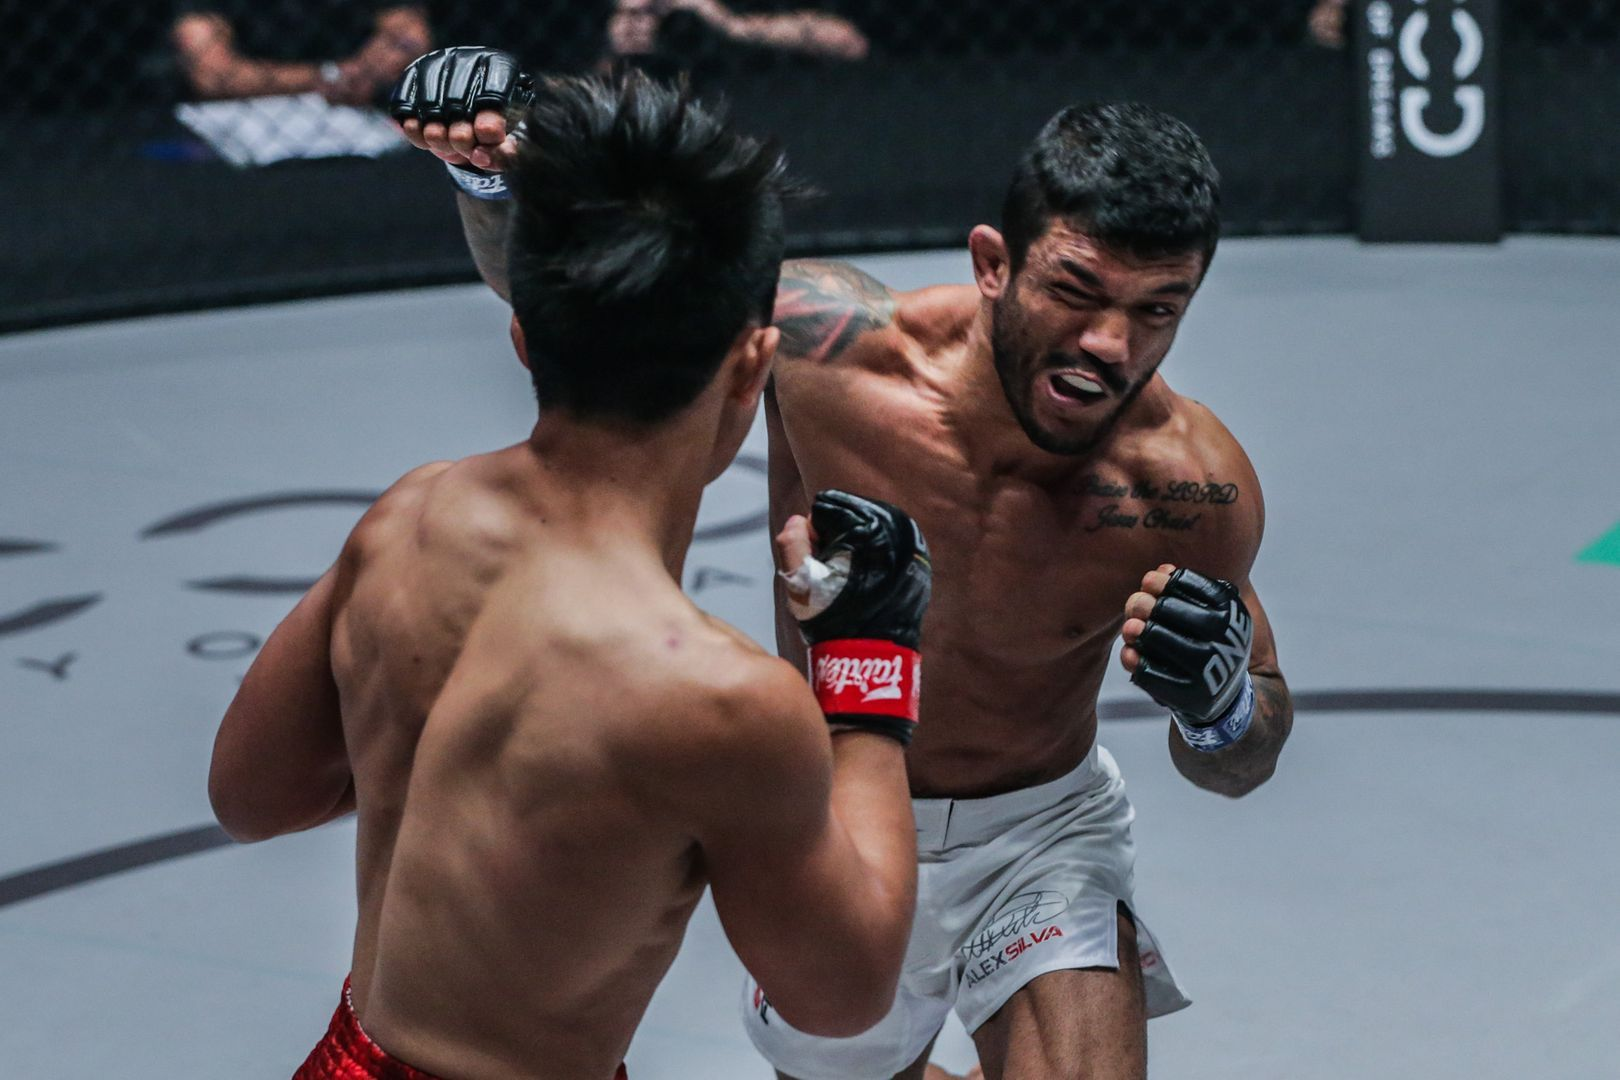 Brazilian mixed martial artist Alex Silva bites down on his mouthguard and hits Joshua Pacio